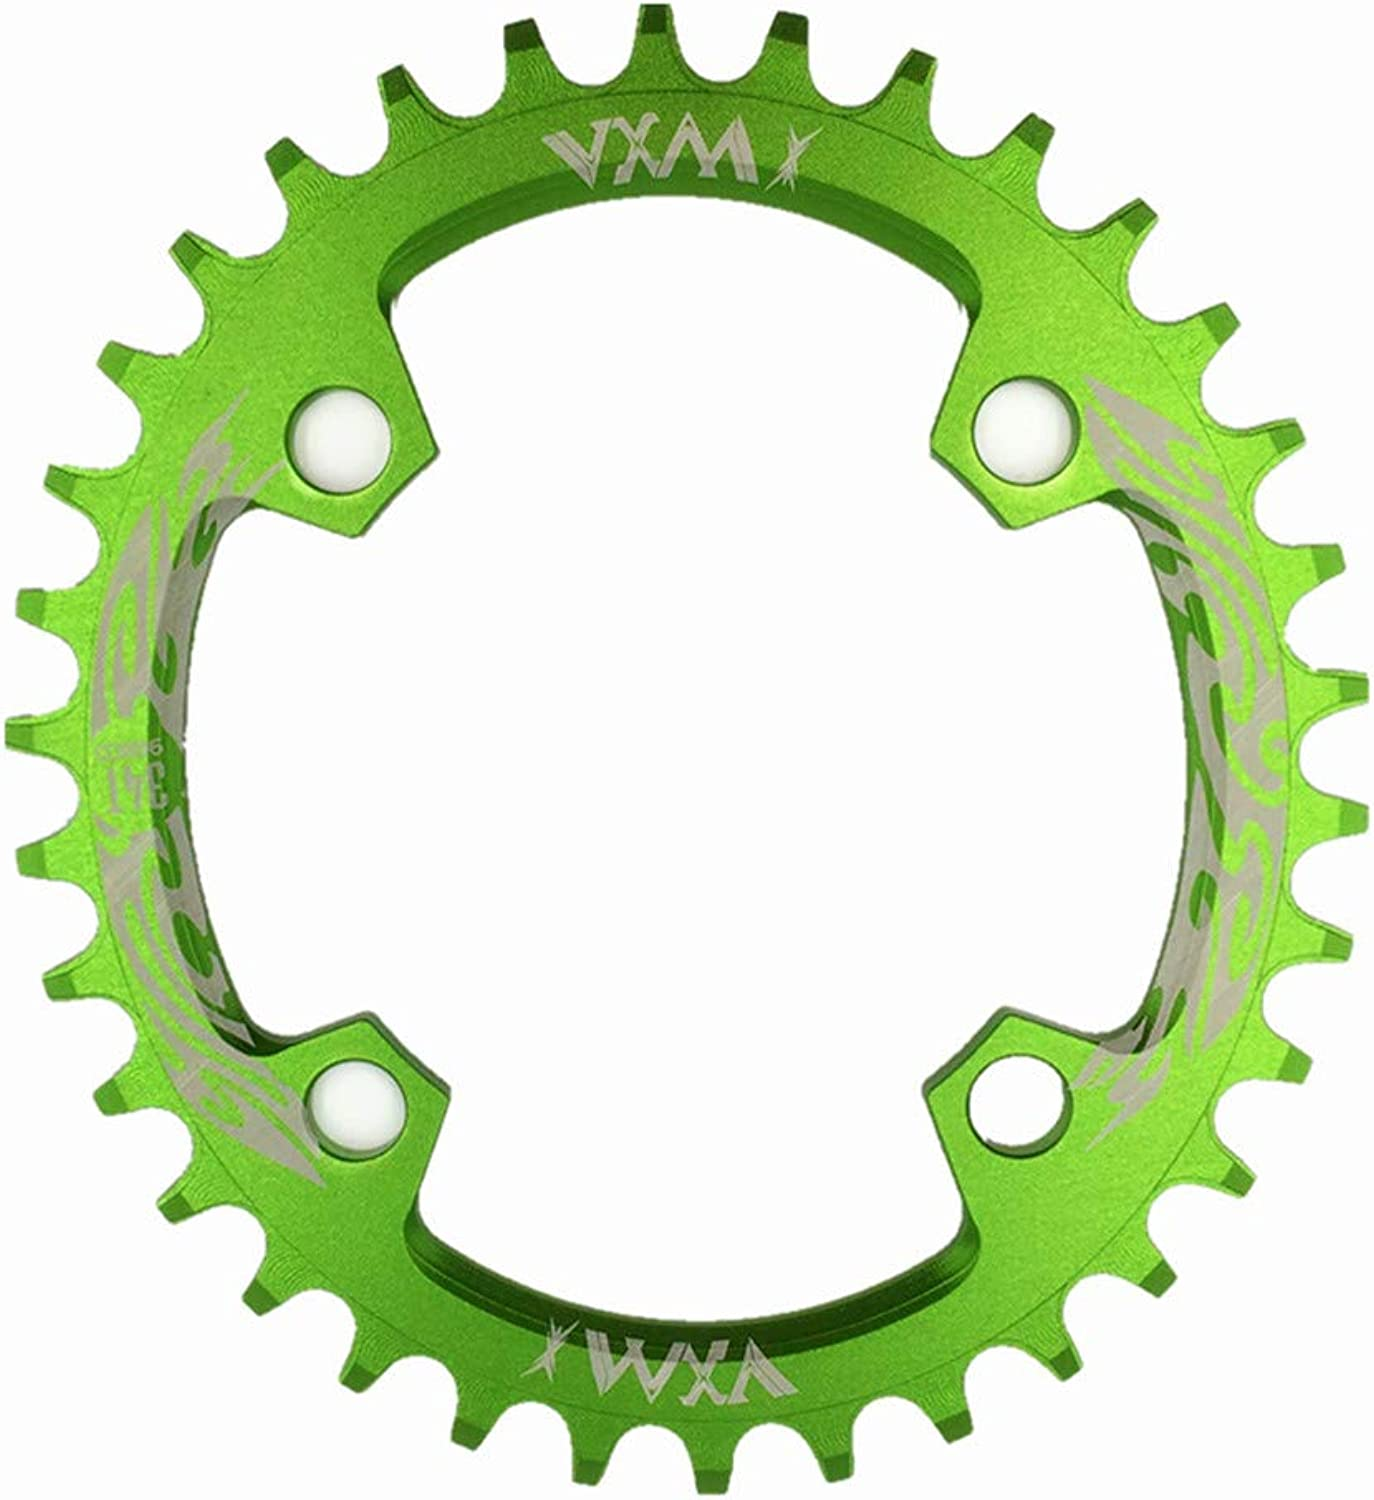 YYIN Speed Bicycle Chainring,BCD 96MM Chainring MTB Bike Narrow Wide Round Oval Single Chain Ring Bike Disc Brake